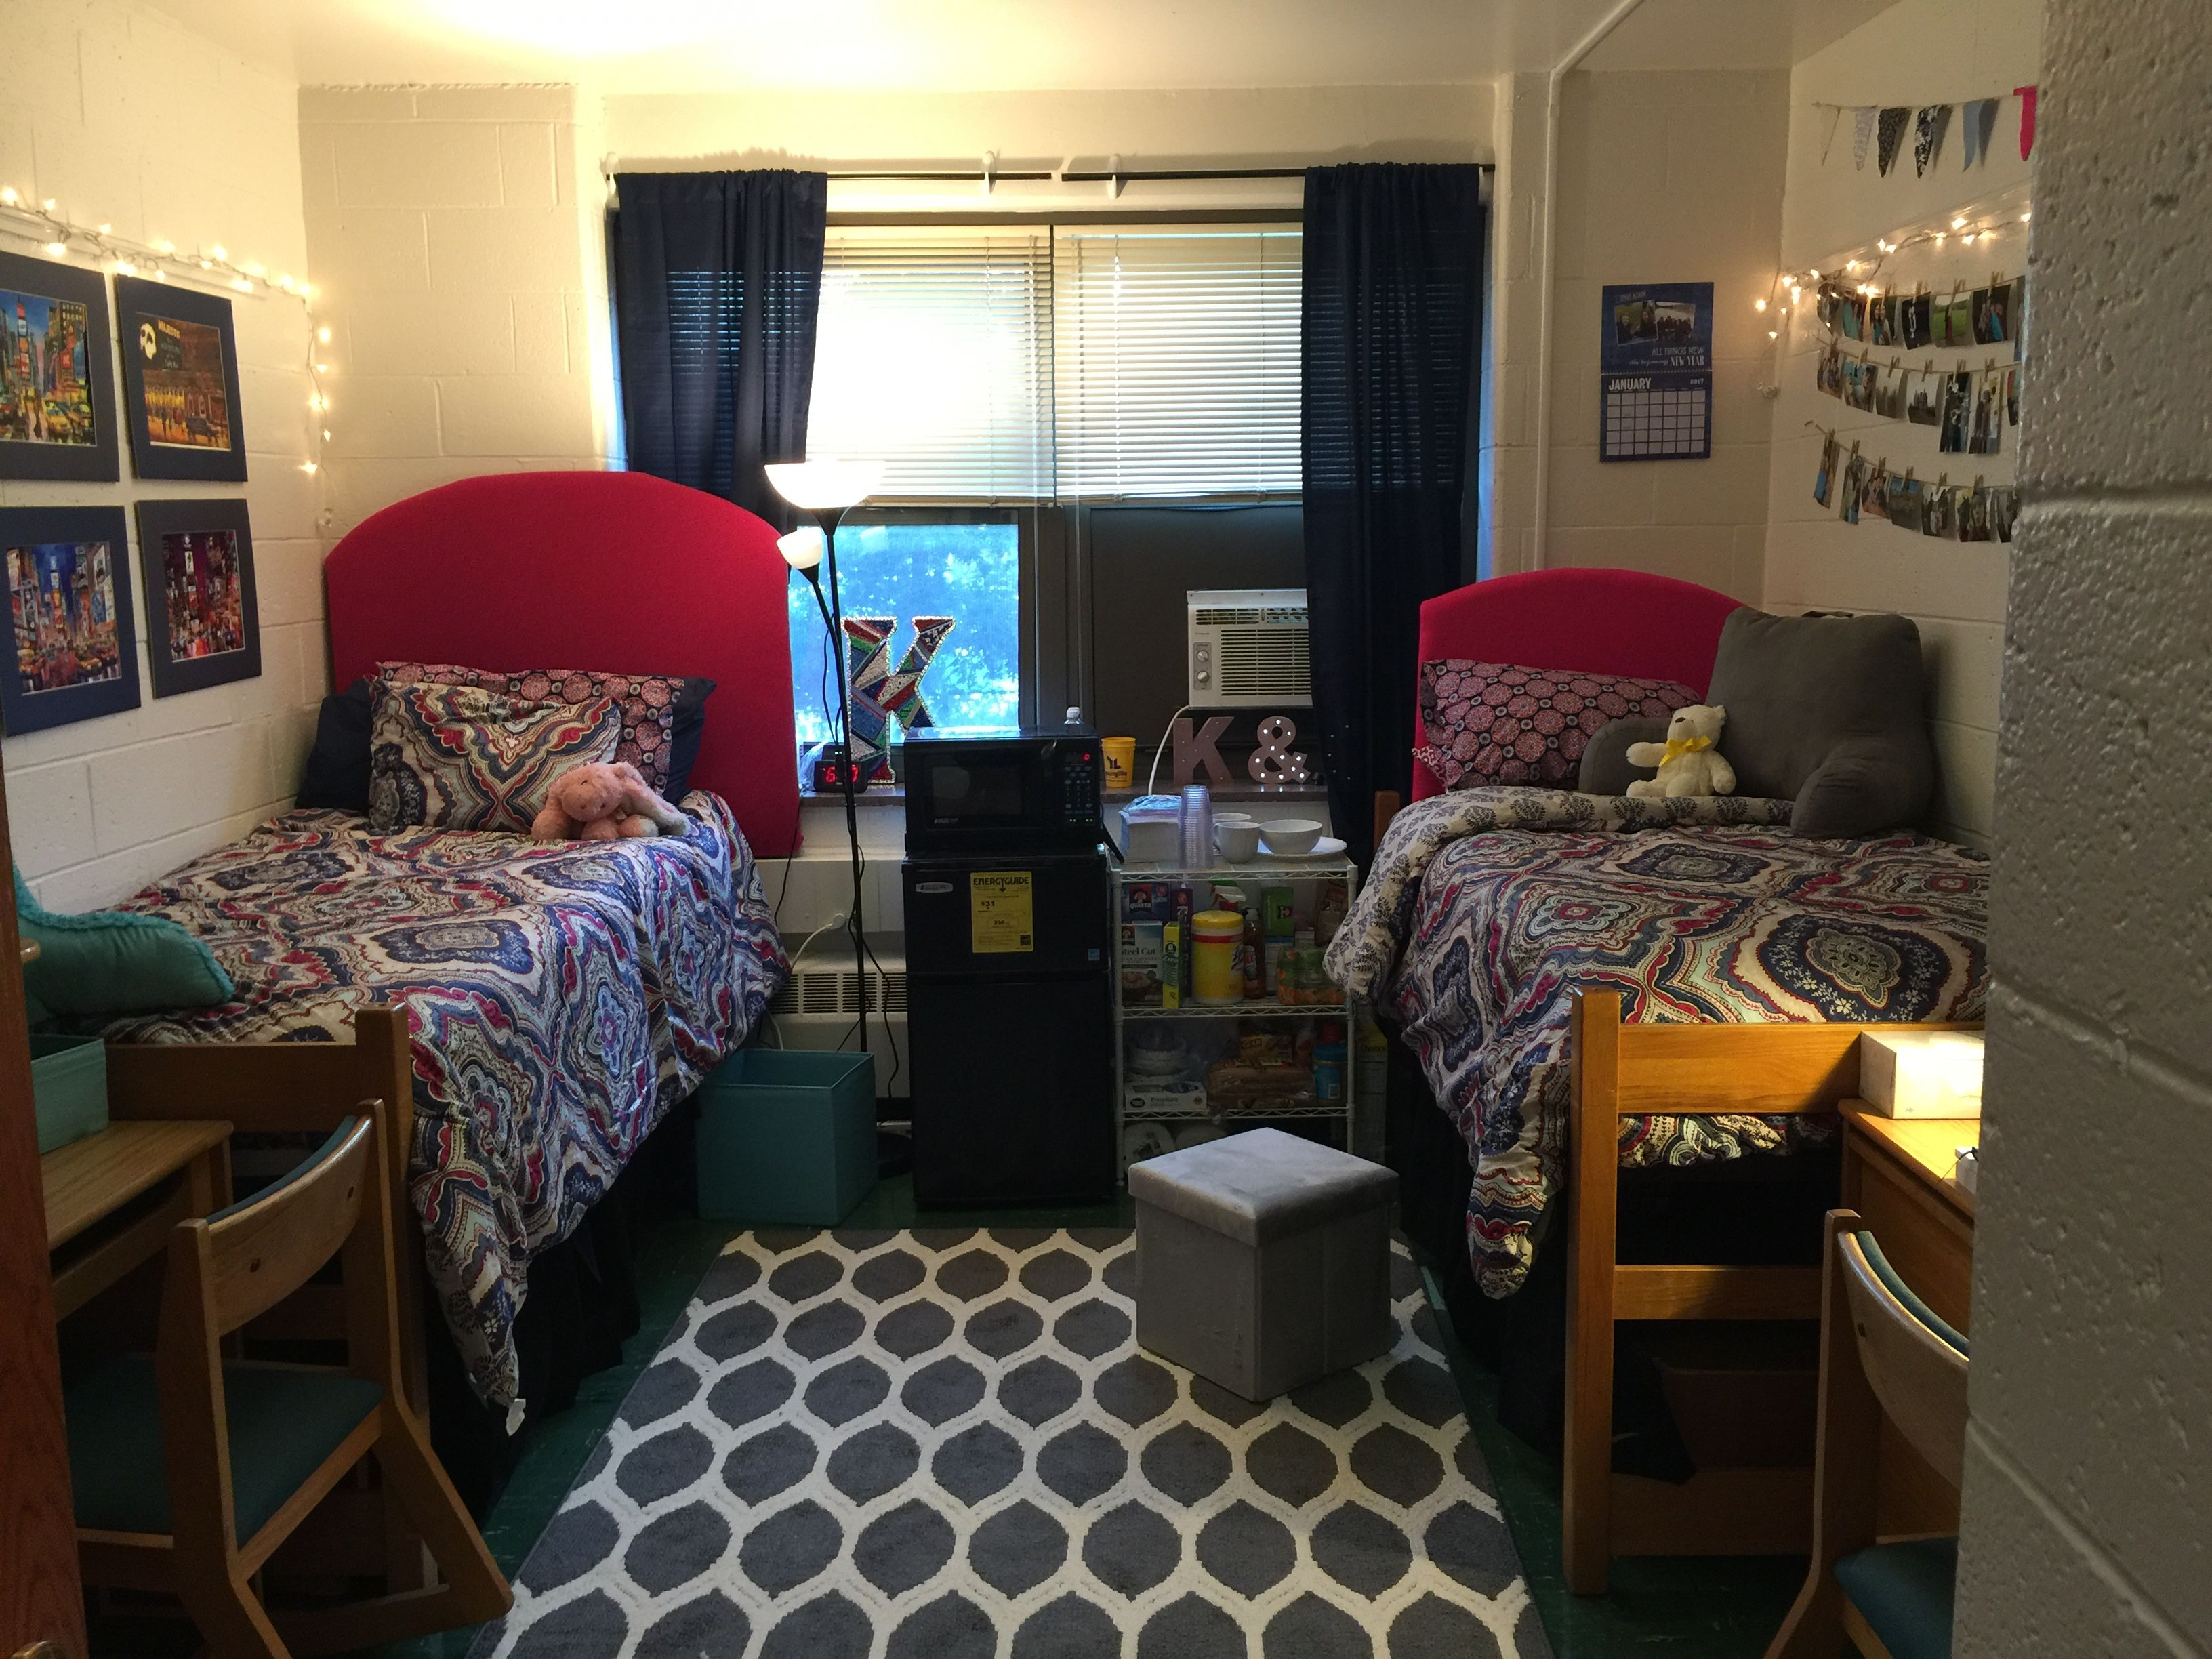 Pin By West Chester University On West Chester Room Decor In 2020